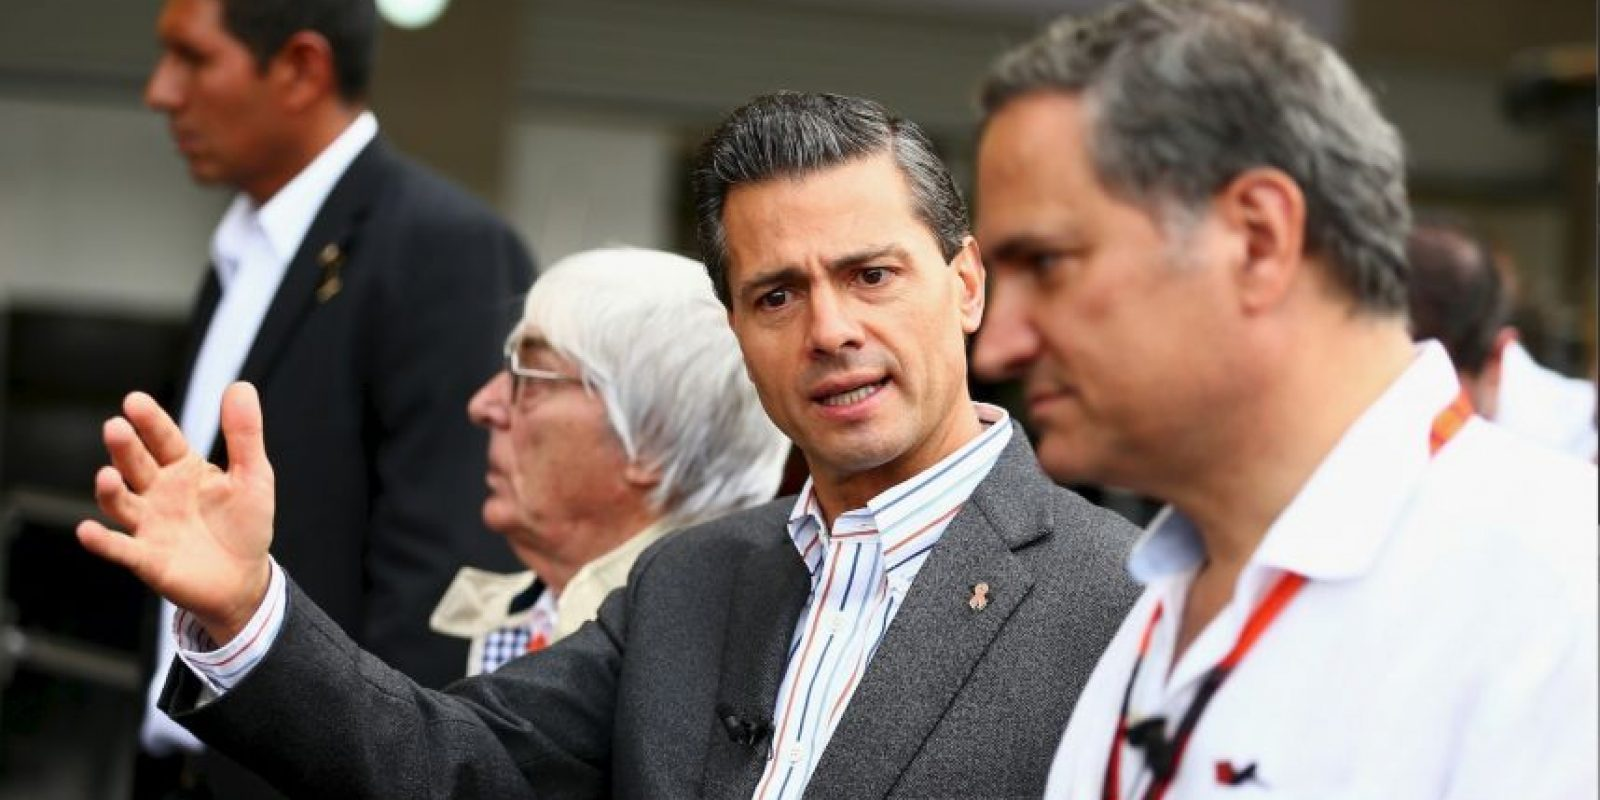 Enrique Peña Nieto, en 2015 Foto: Getty Images